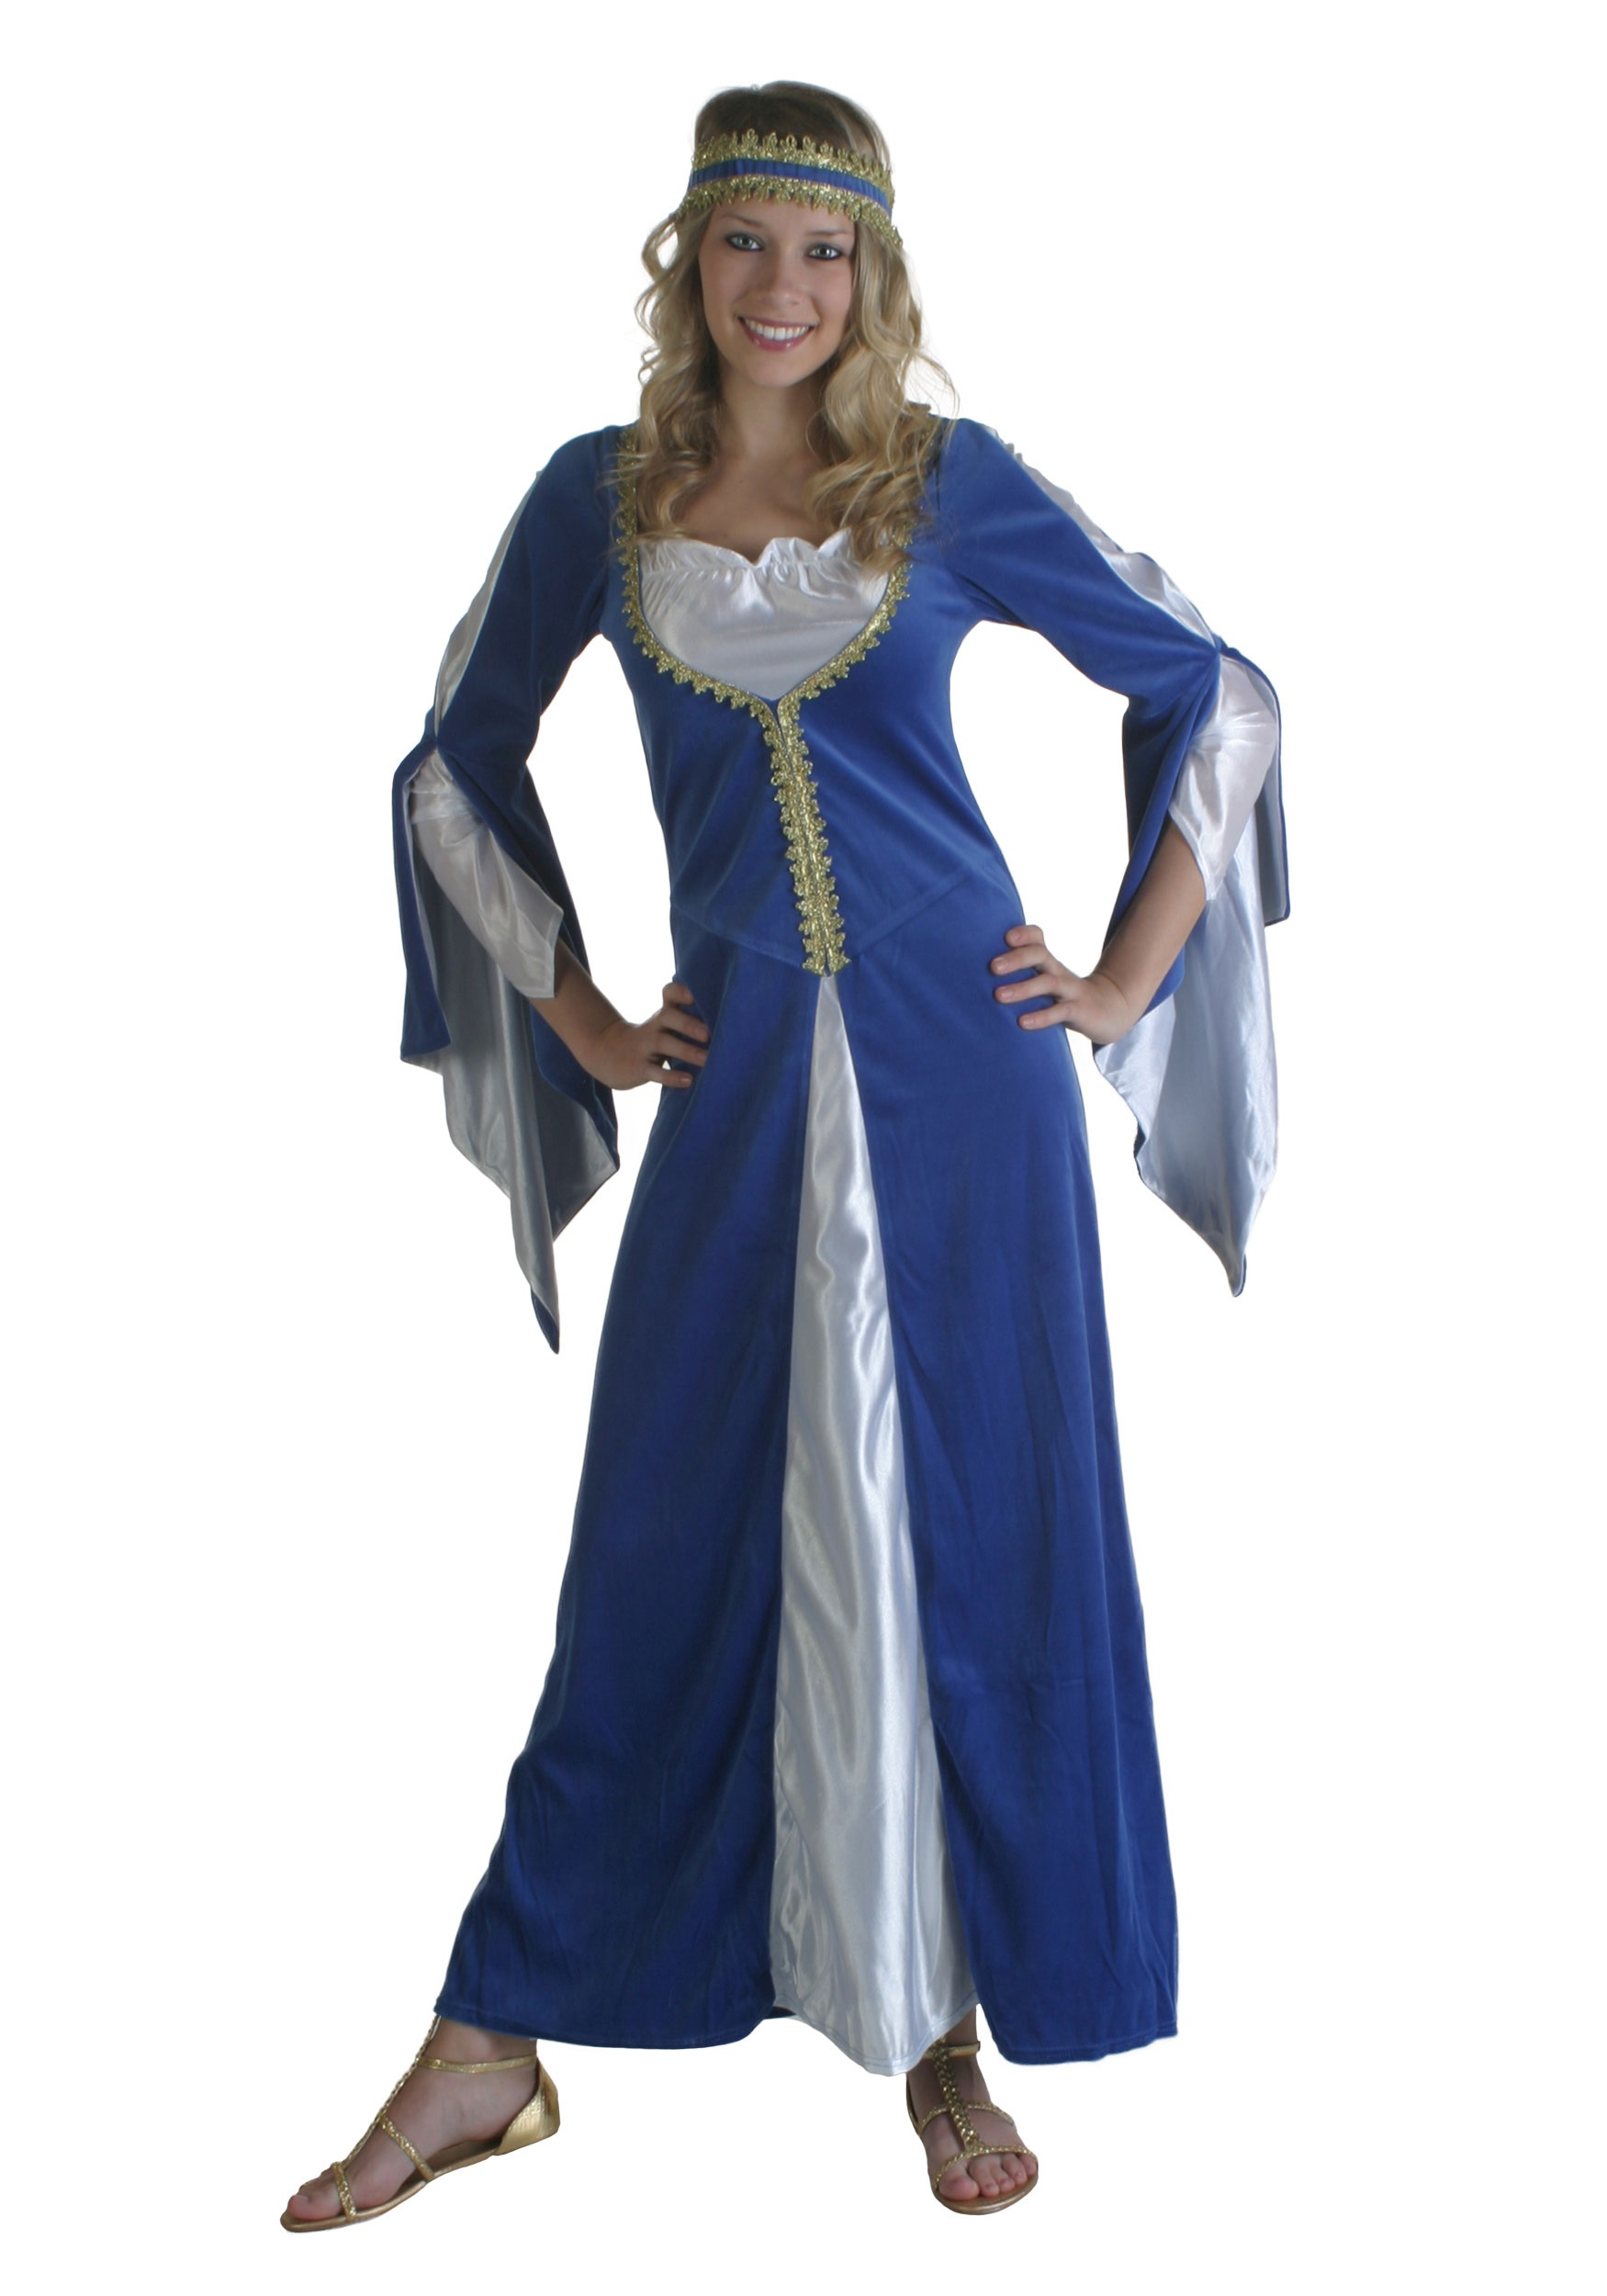 Halloween Costume 303.Blue Regal Princess Renaissance Costume